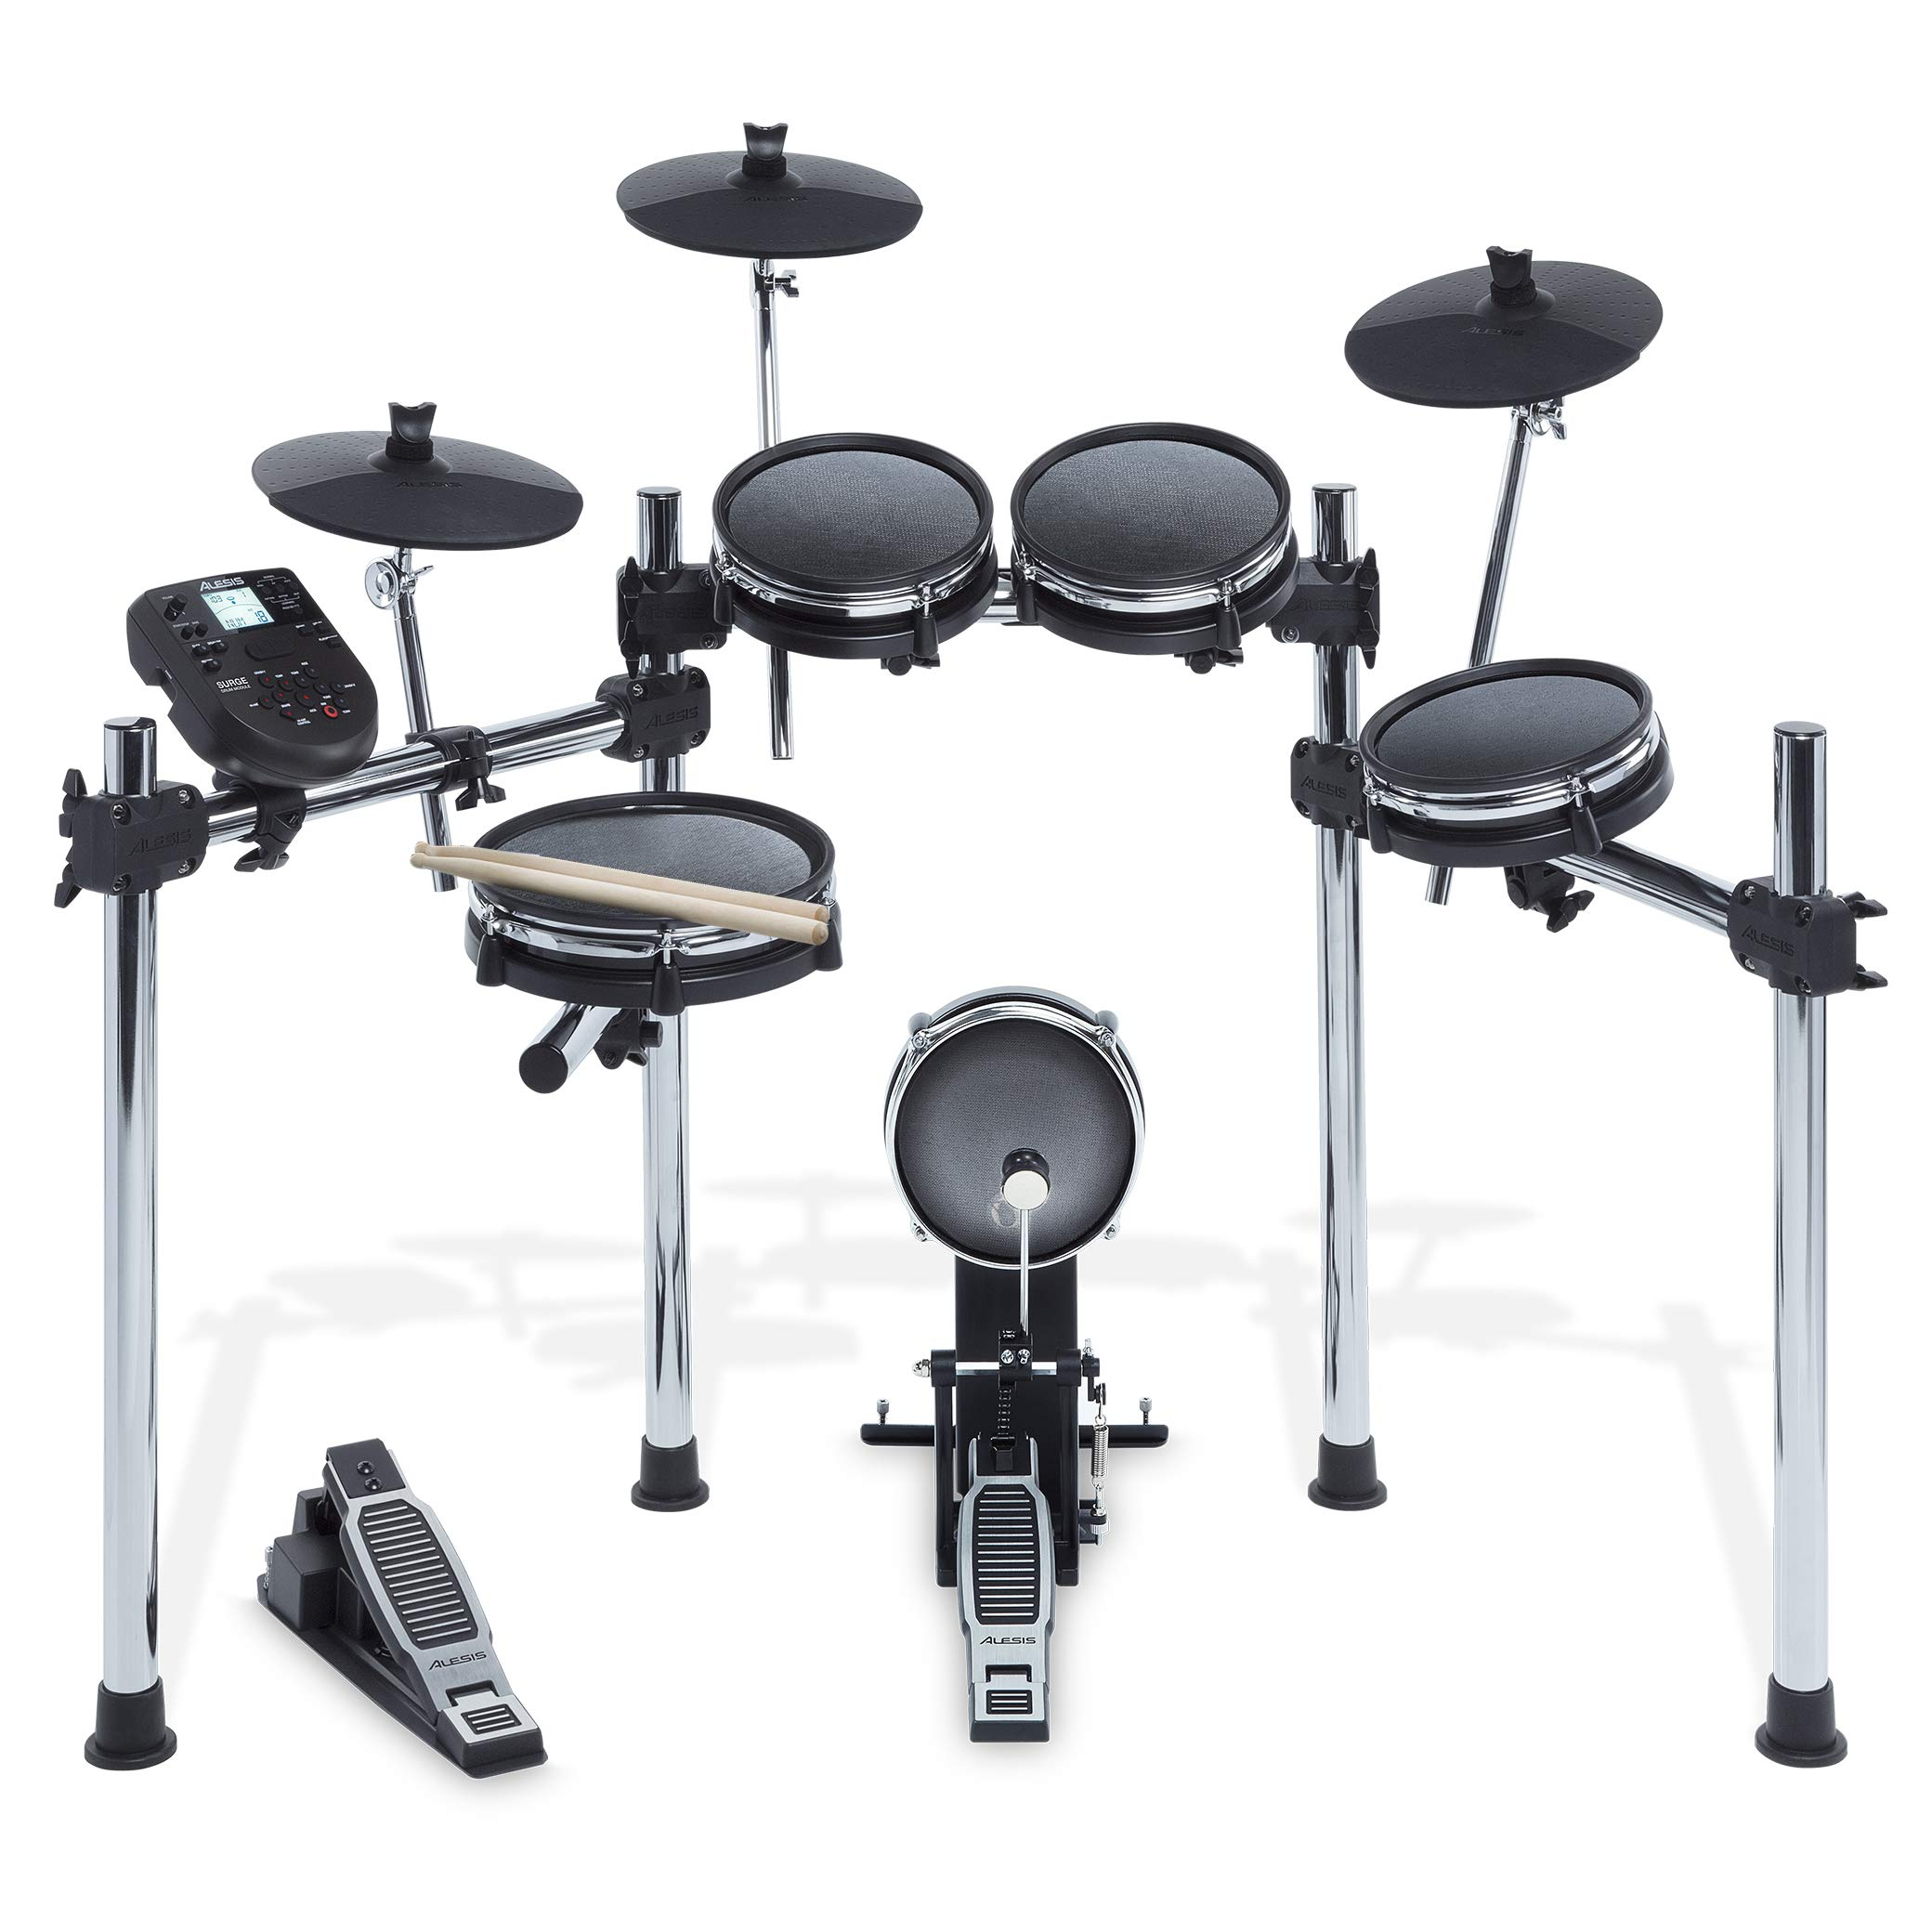 Alesis Surge Mesh Kit | Eight-Piece Electronic Drum Kit with Mesh Heads, Chrome Rack and Surge Drum Module including 40 Kits, 385 sounds 60 Play Aong Tracks and USB/MIDI Connectivity by Alesis